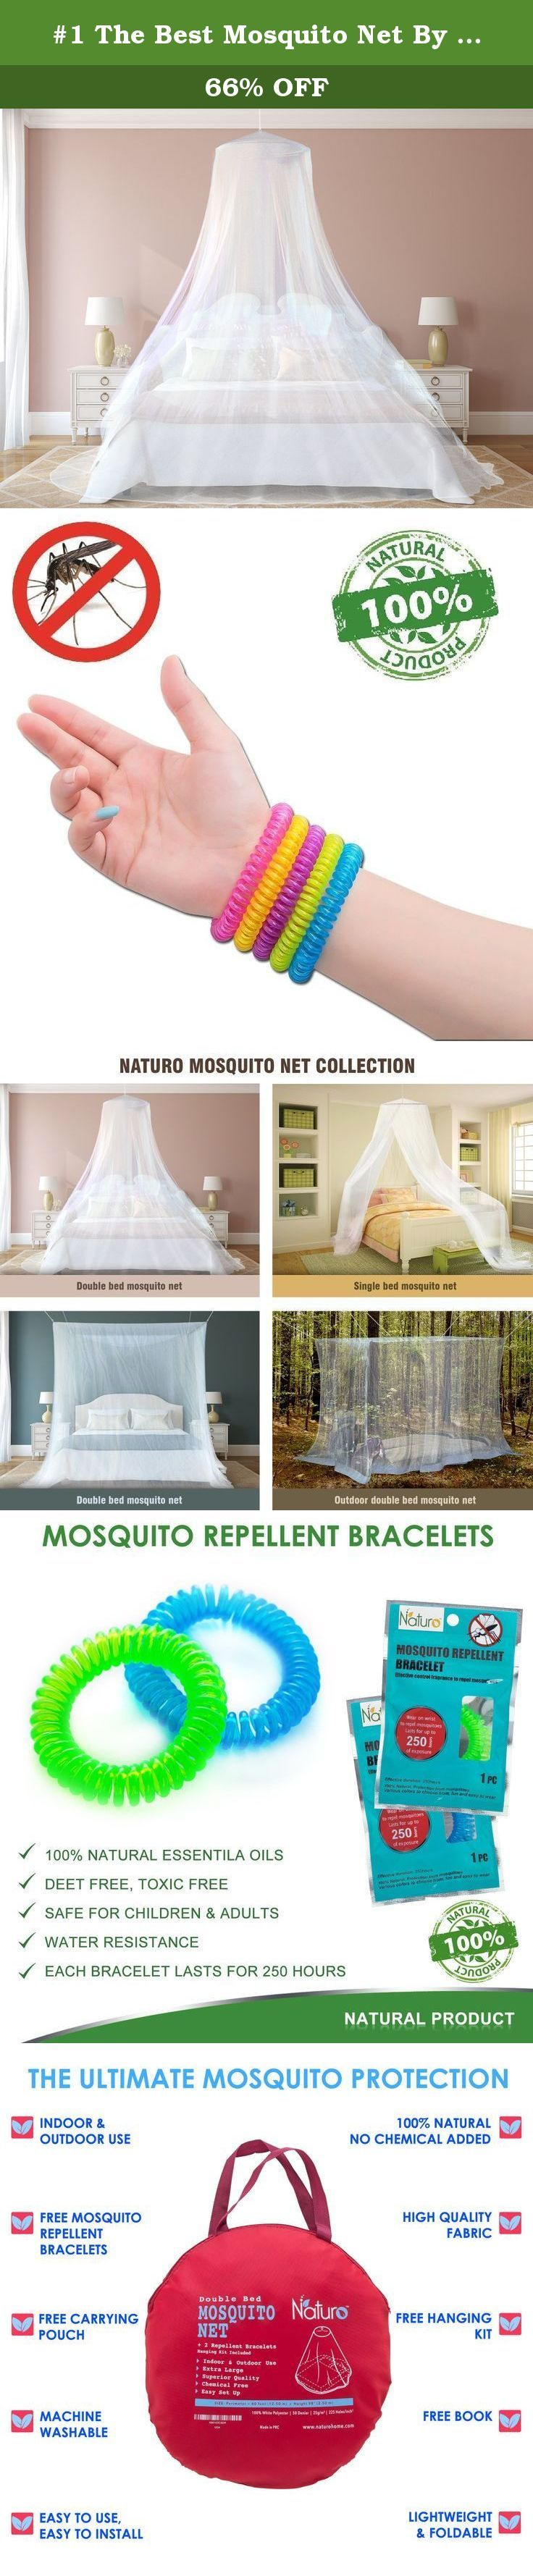 Bed Canopy No Nails : Best ideas about mosquito net canopy on